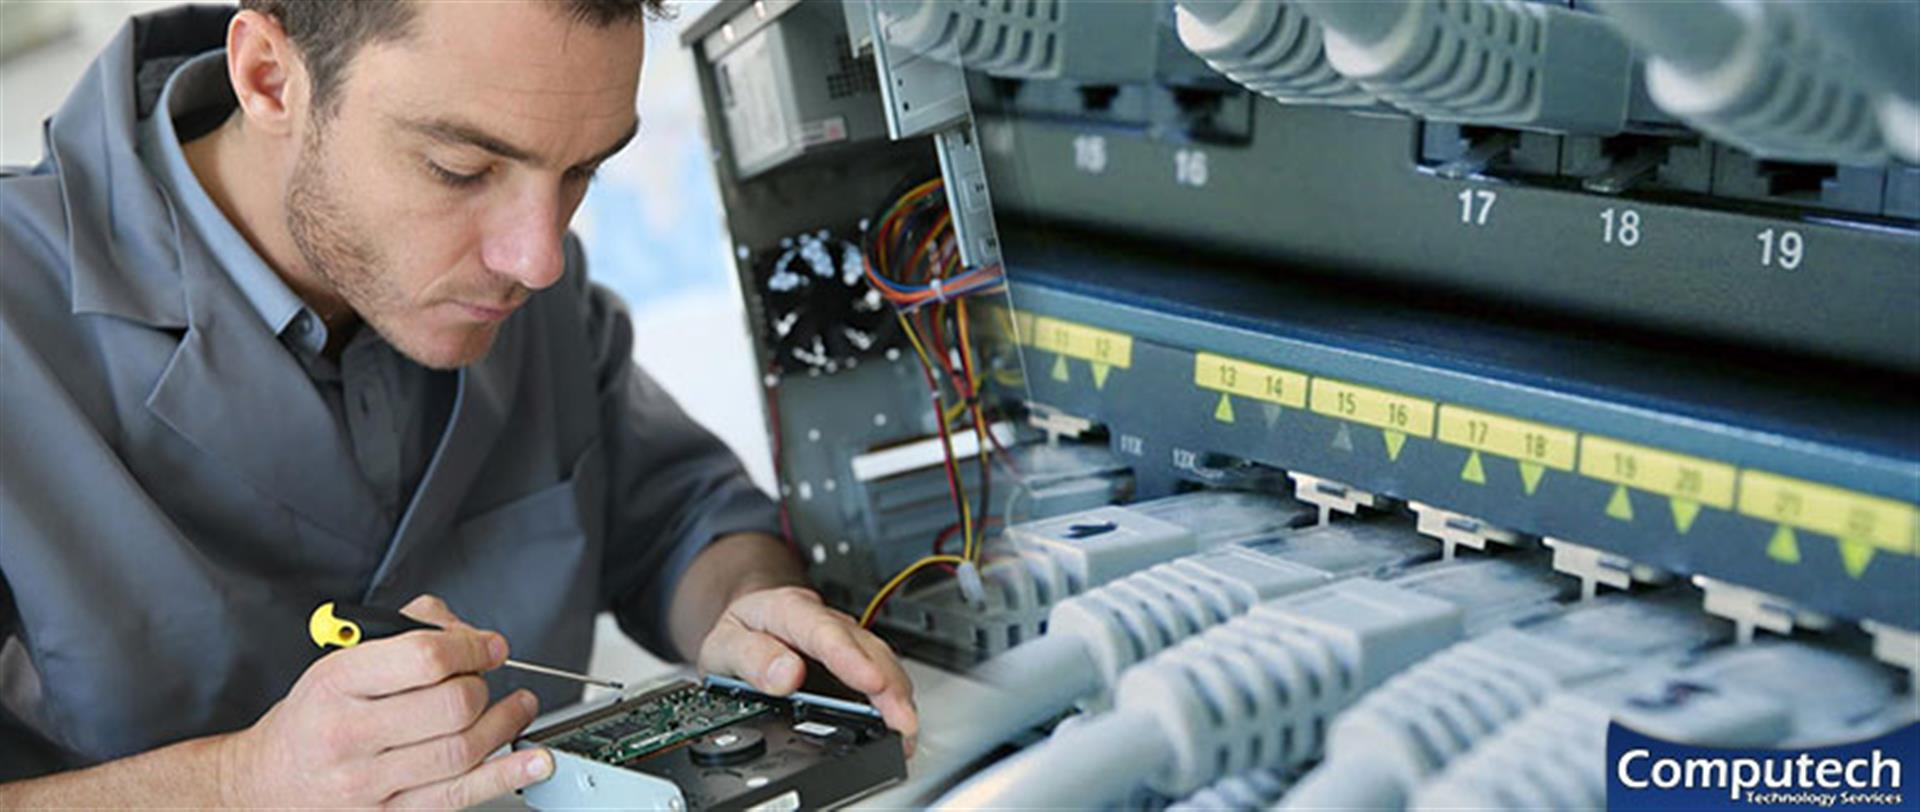 Adairsville Georgia On Site PC & Printer Repair, Network, Voice & Data Cabling Services